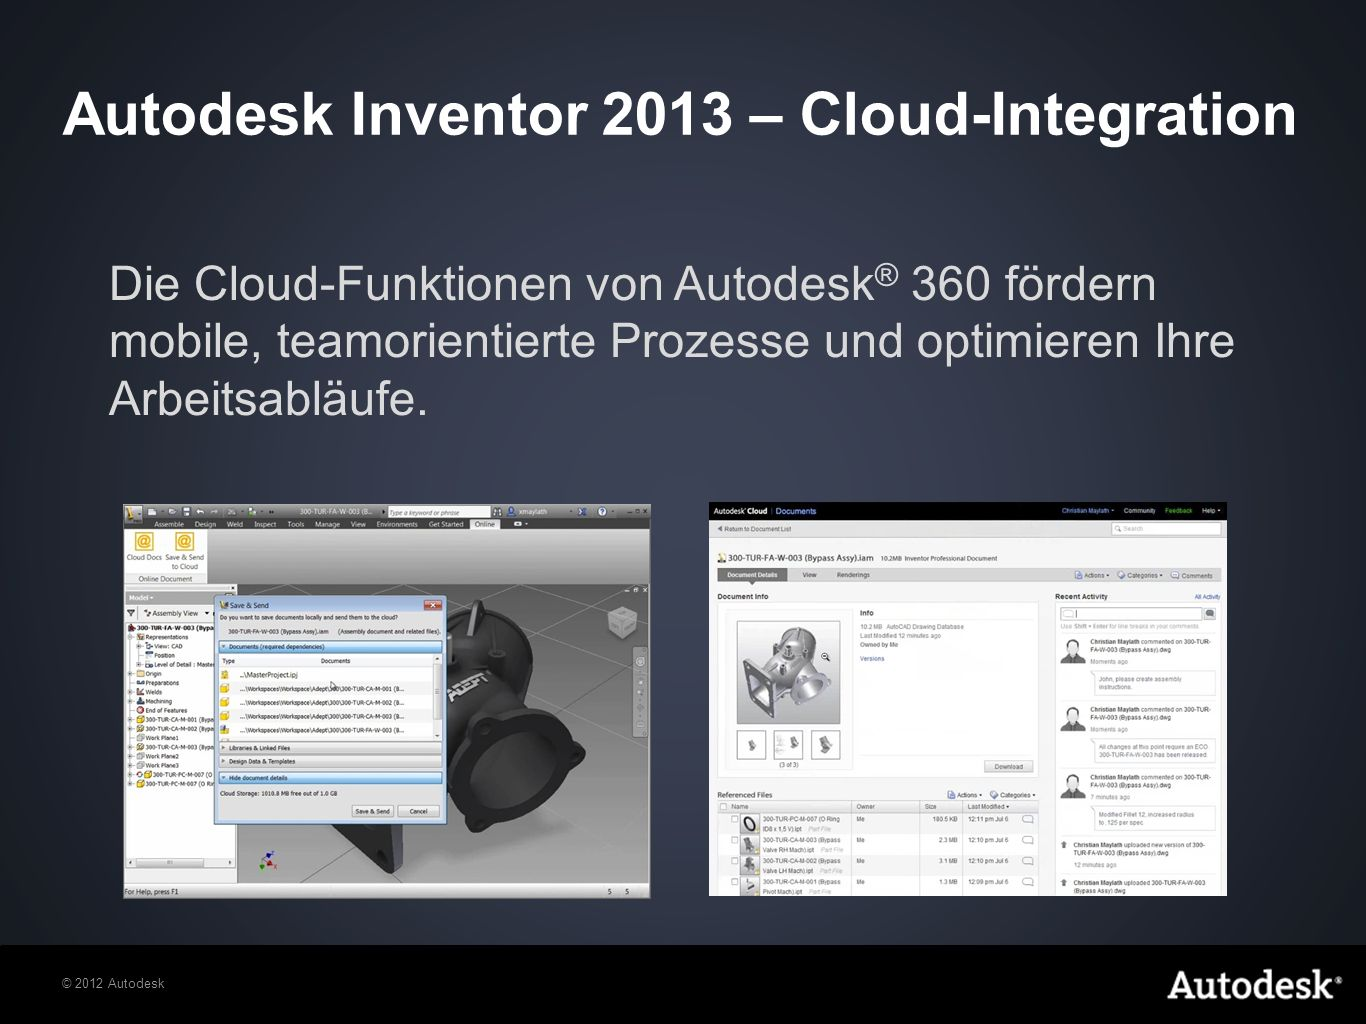 Autodesk Inventor 2013 – Cloud-Integration